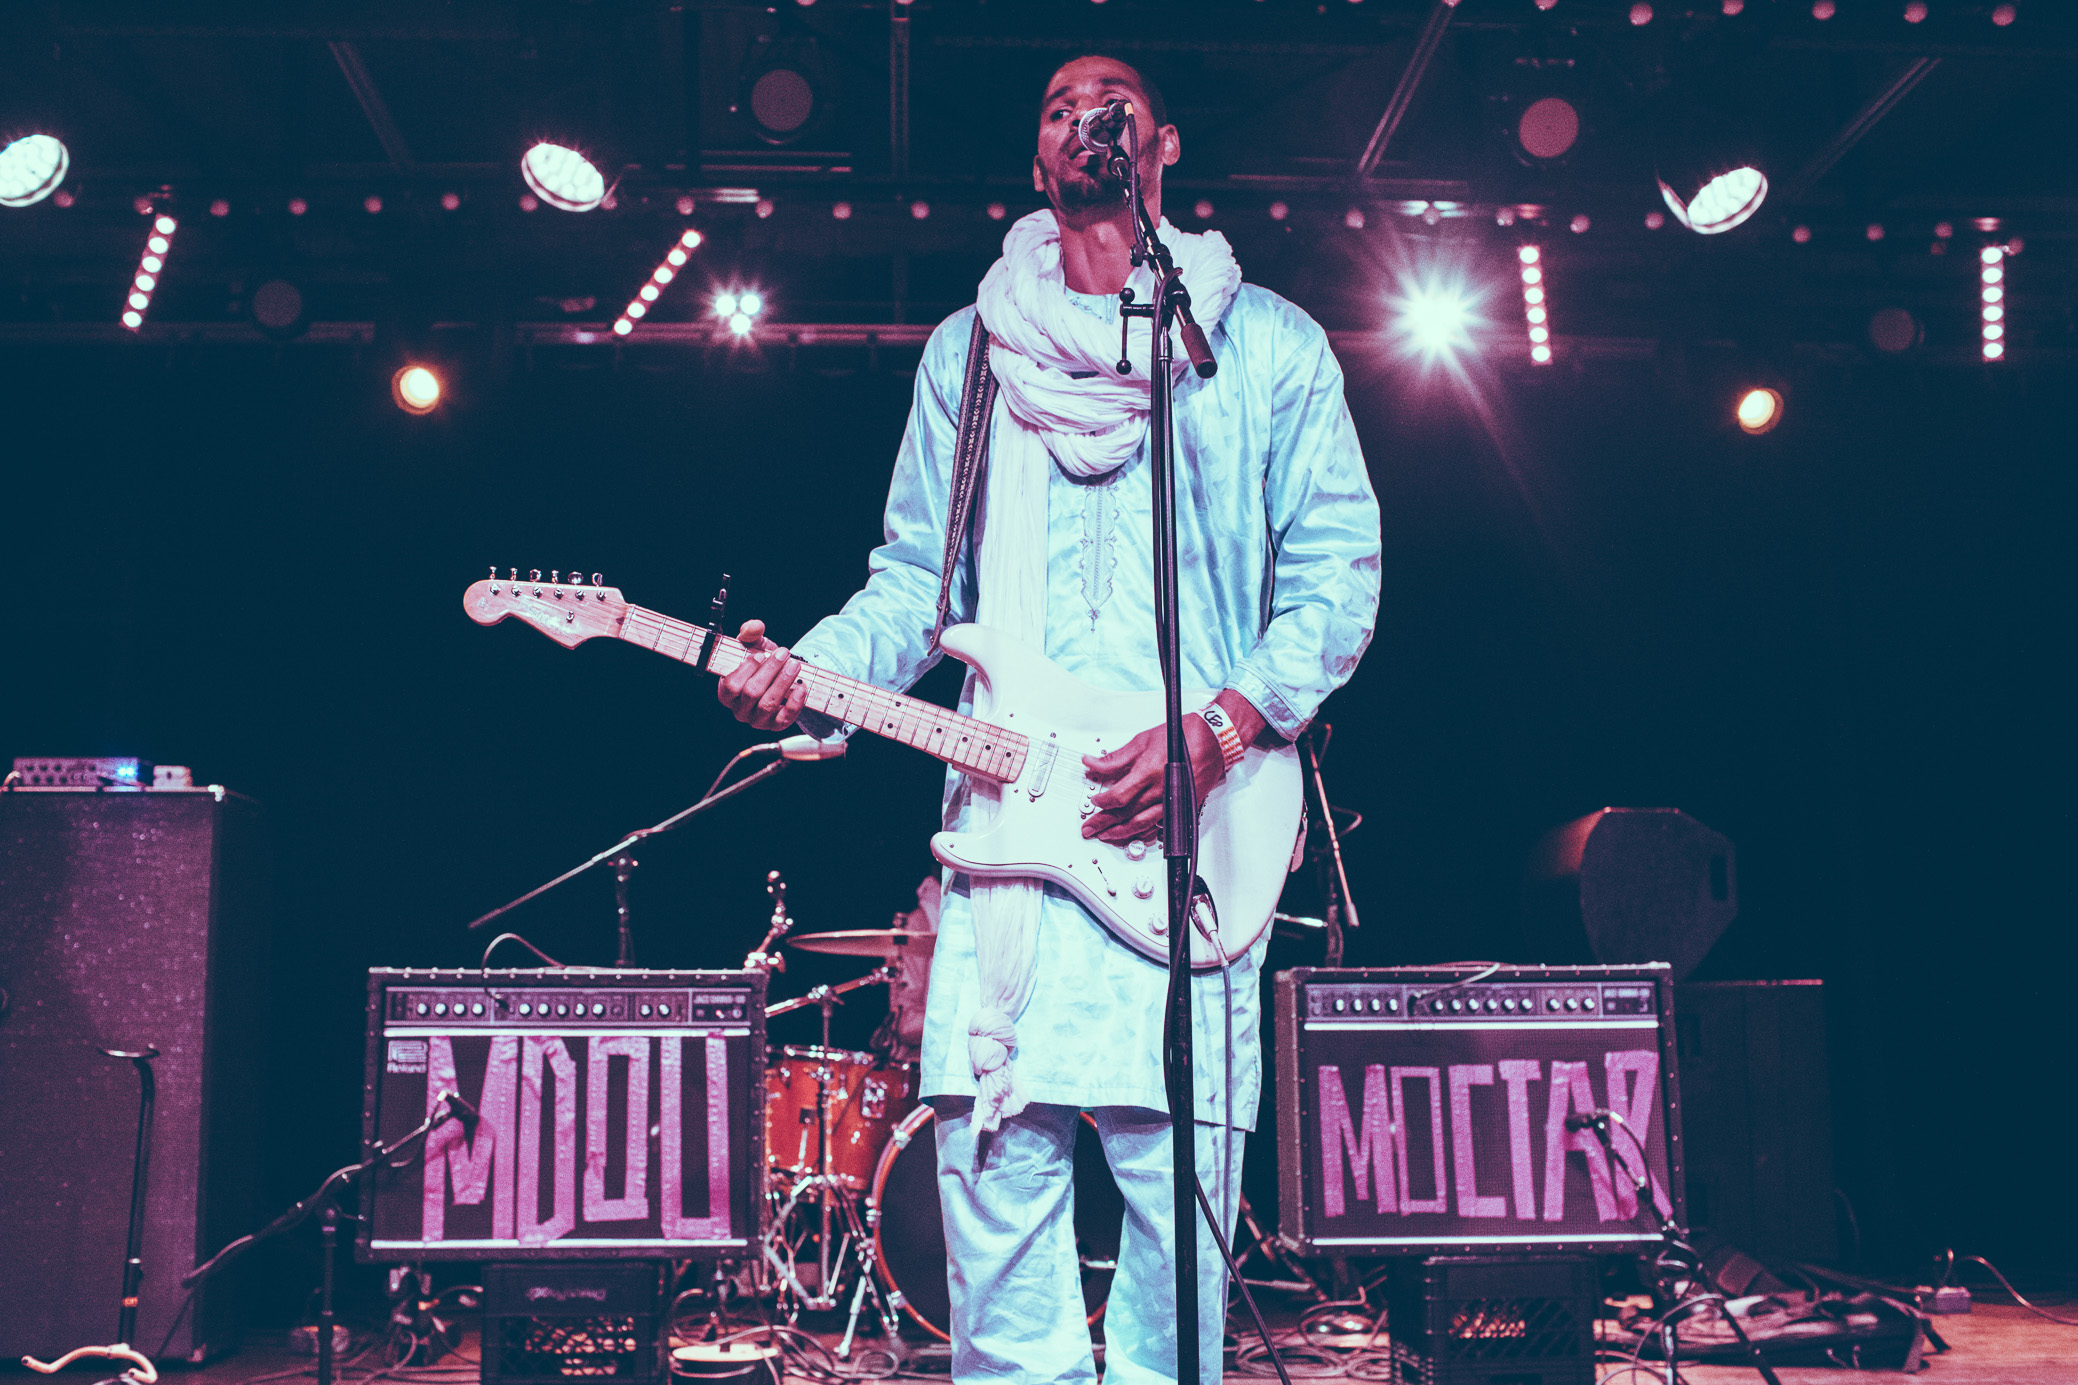 Mdou Moctar performs in concert at Saturn Birmingham in Birmingham, Alabama on April 30th, 2019. (Photo by David A. Smith / DSmithScenes)